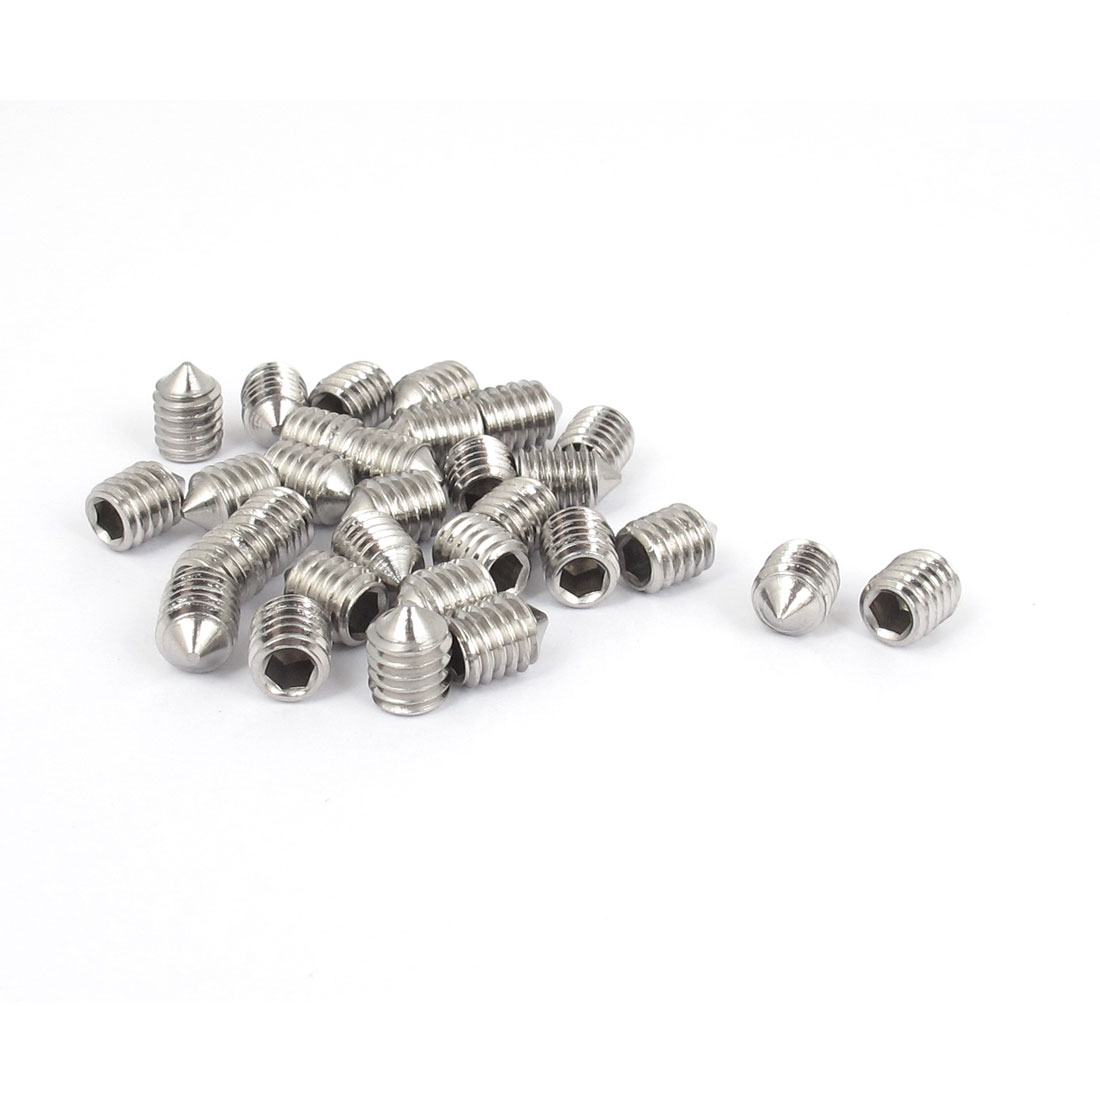 M6x8mm 304 Stainless Steel Cone Point Hexagon Socket Grub Screws 30pcs